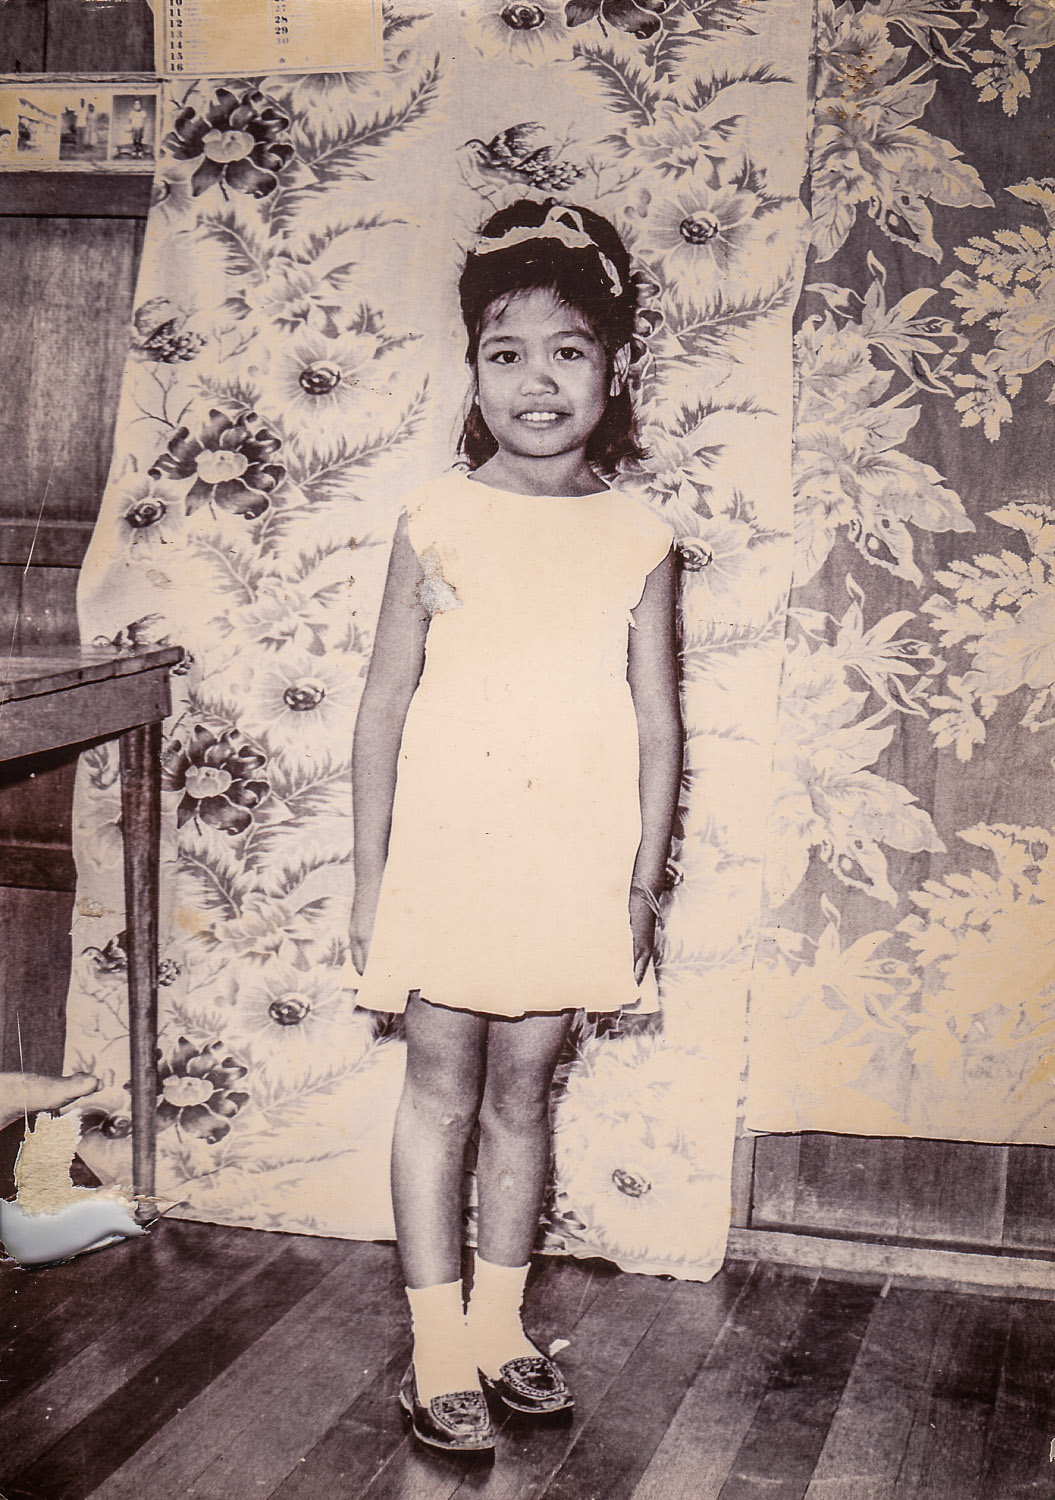 My sister Ate Del when she was young as potency 8 or 9yrs old. Photo date unknown.